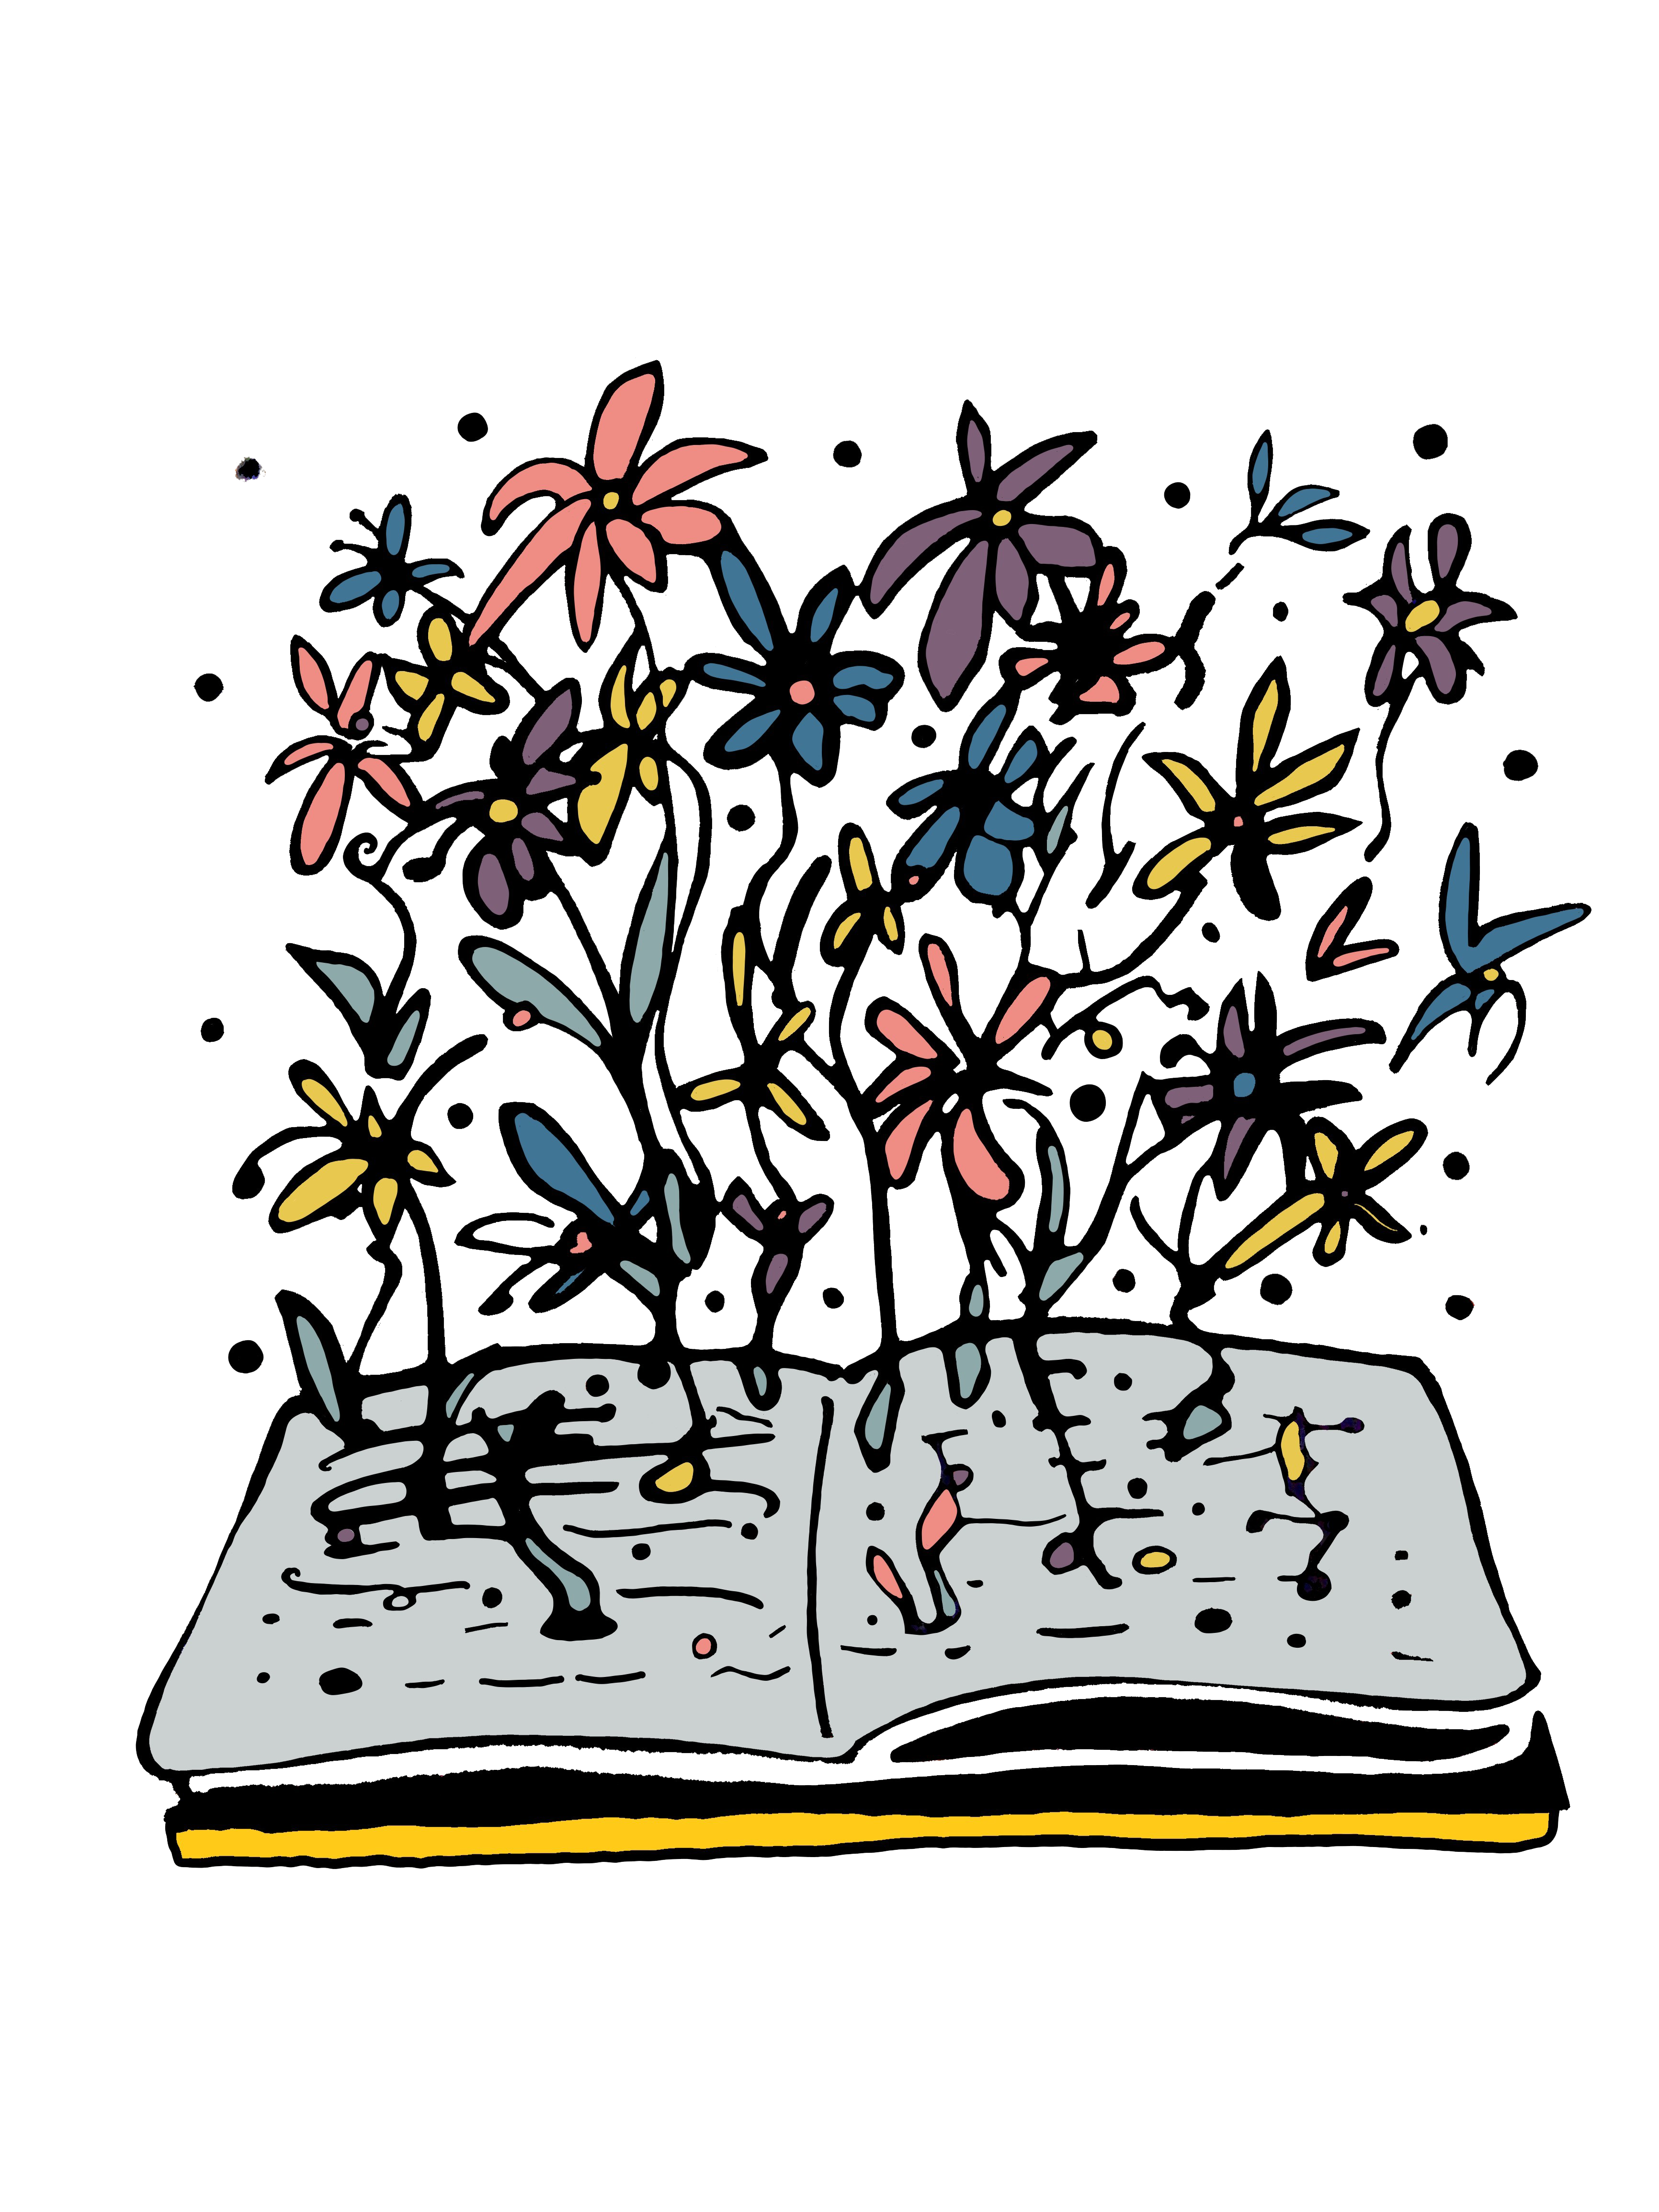 open book with flowers growing from the pages